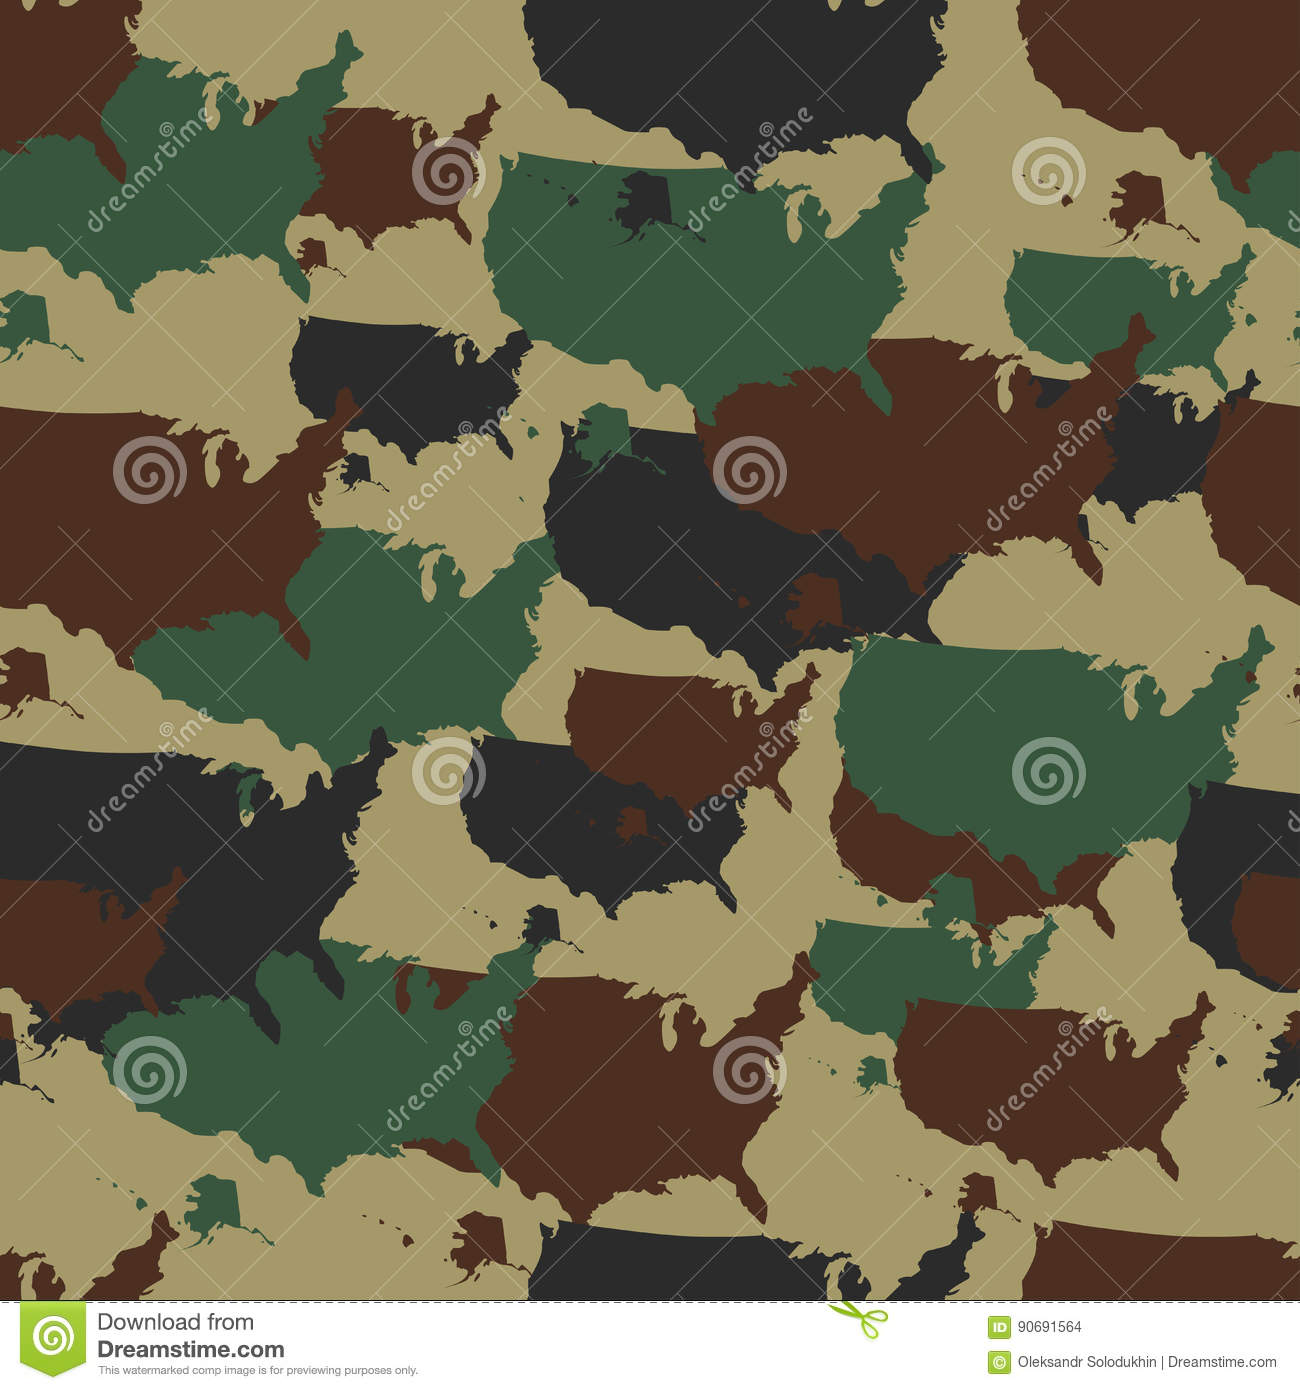 Military camouflage pattern seamless repeat camo in different military camouflage pattern seamless repeat camo in different colors vector military print with usa map army woodland toneelgroepblik Images